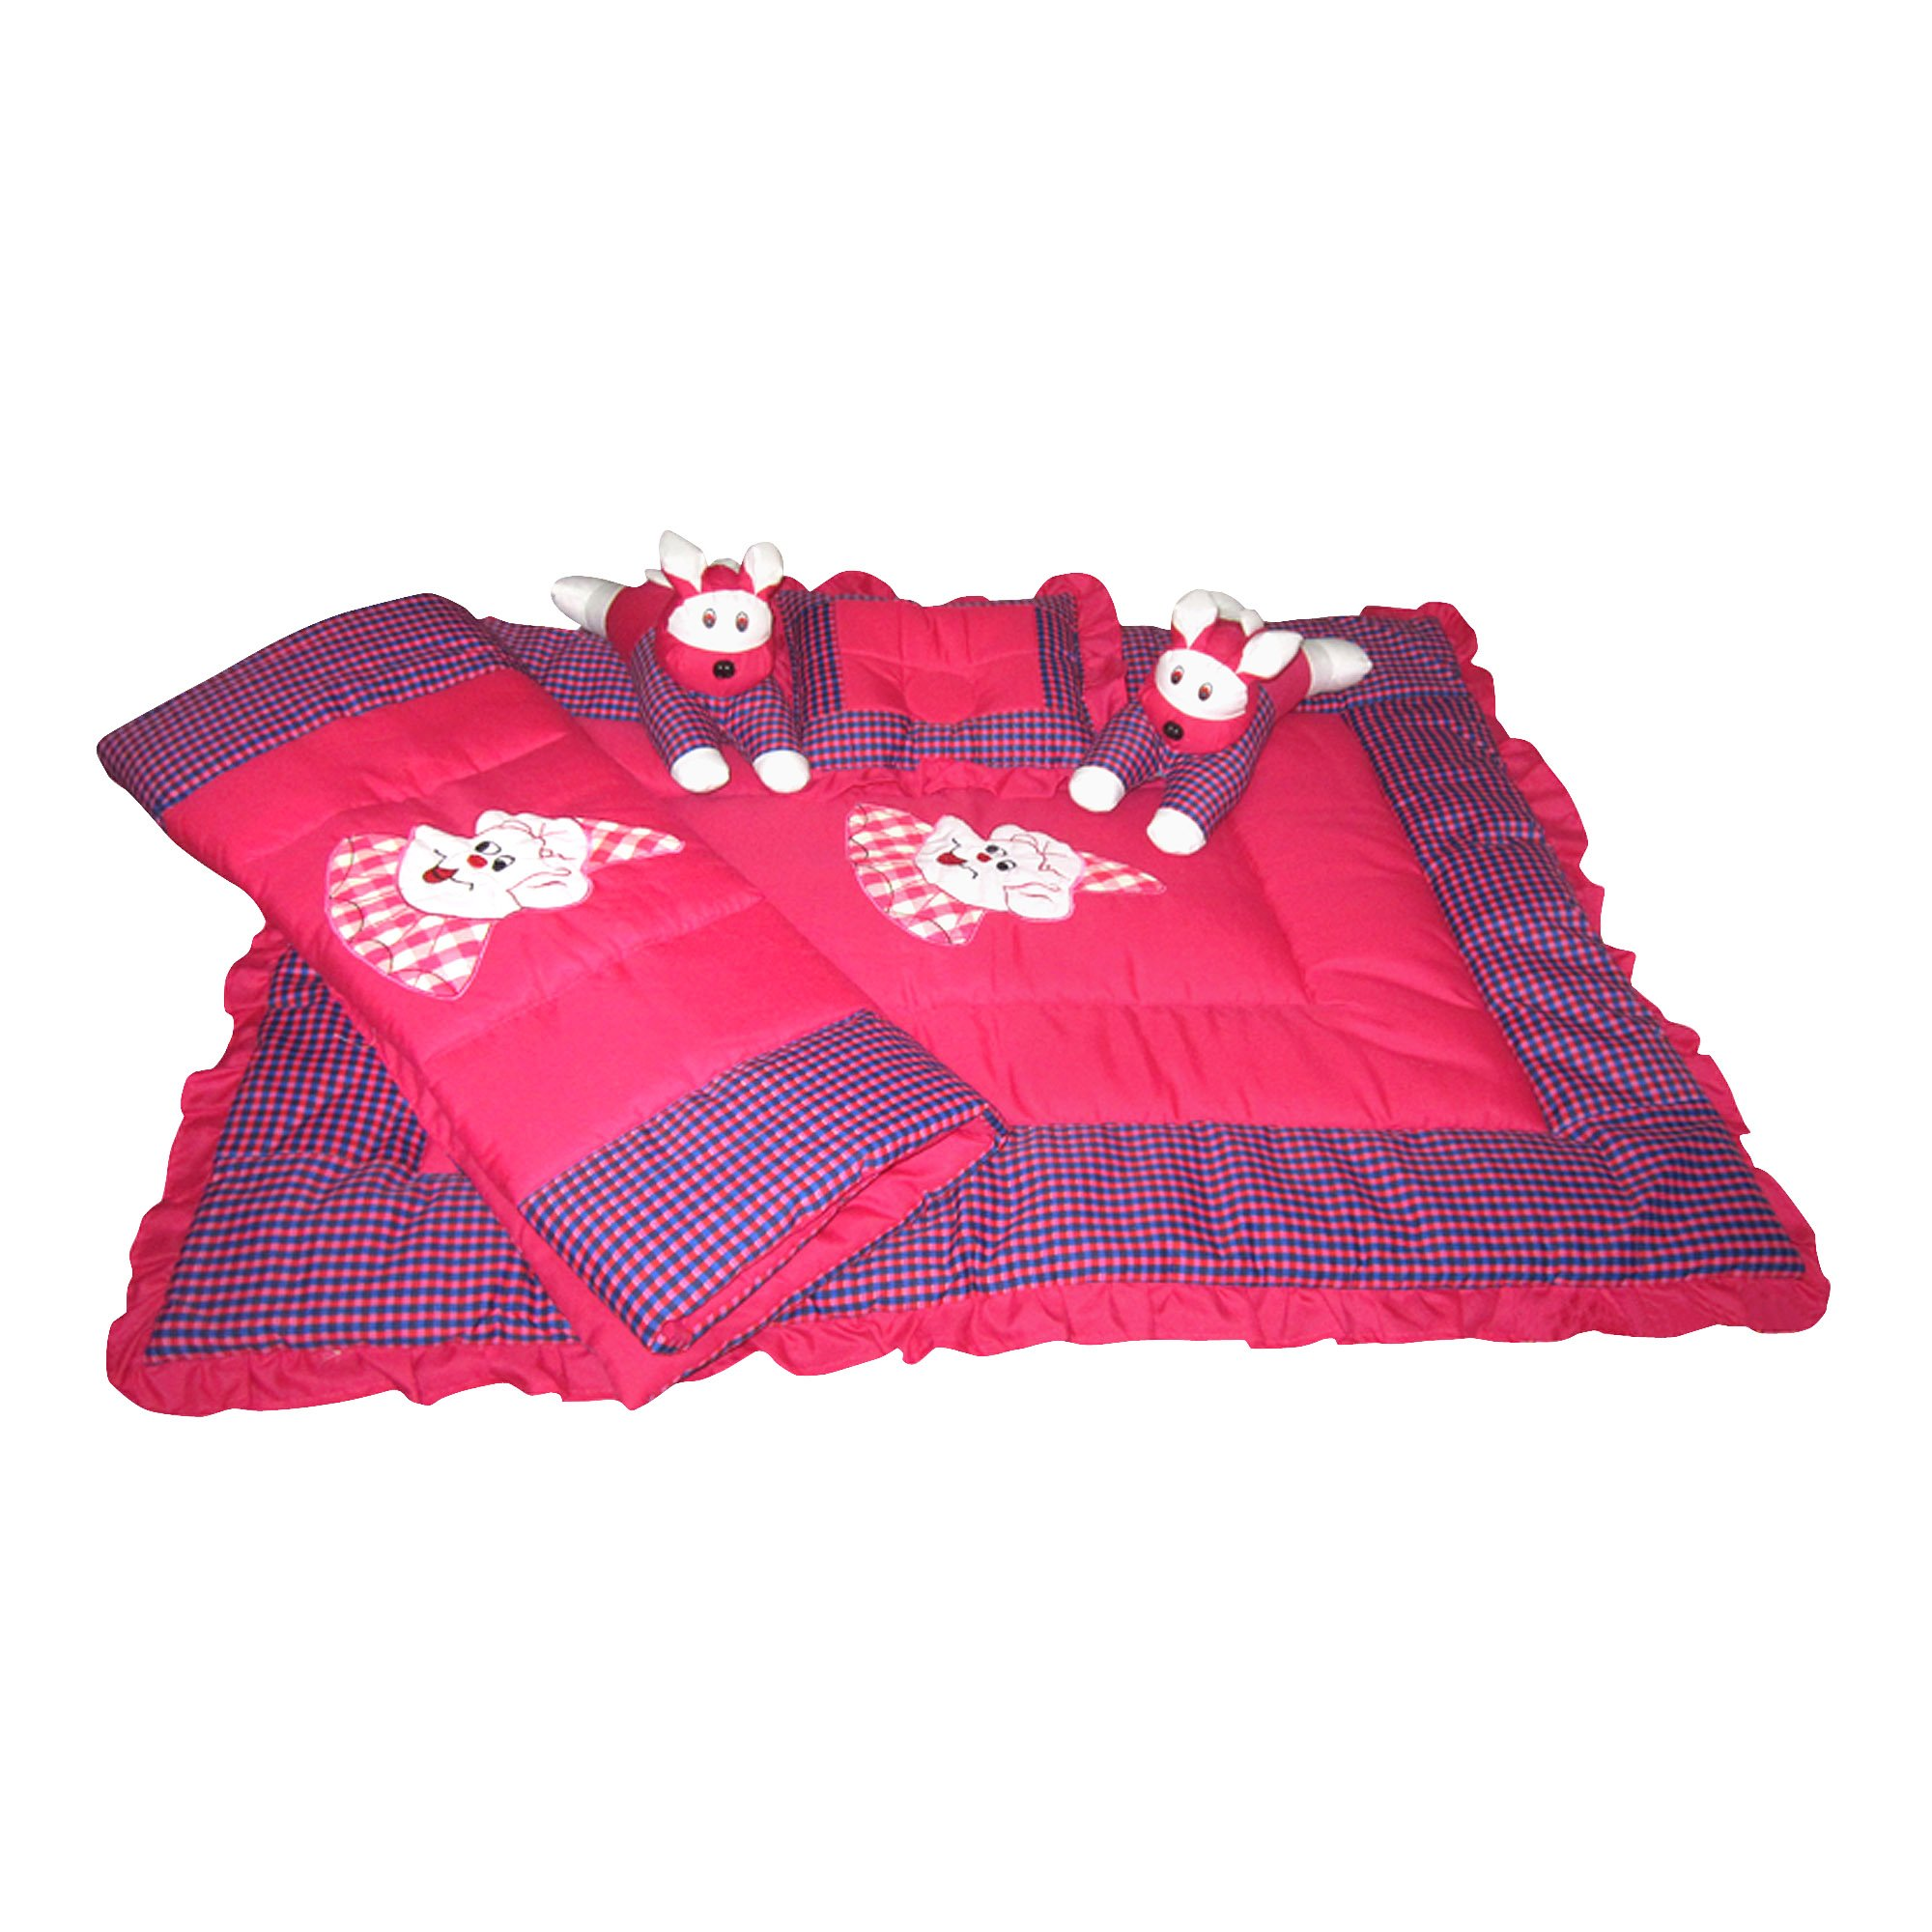 Maple Krafts Swiss Cotton Baby Bedding set upto 18 months Magenta with Pillow